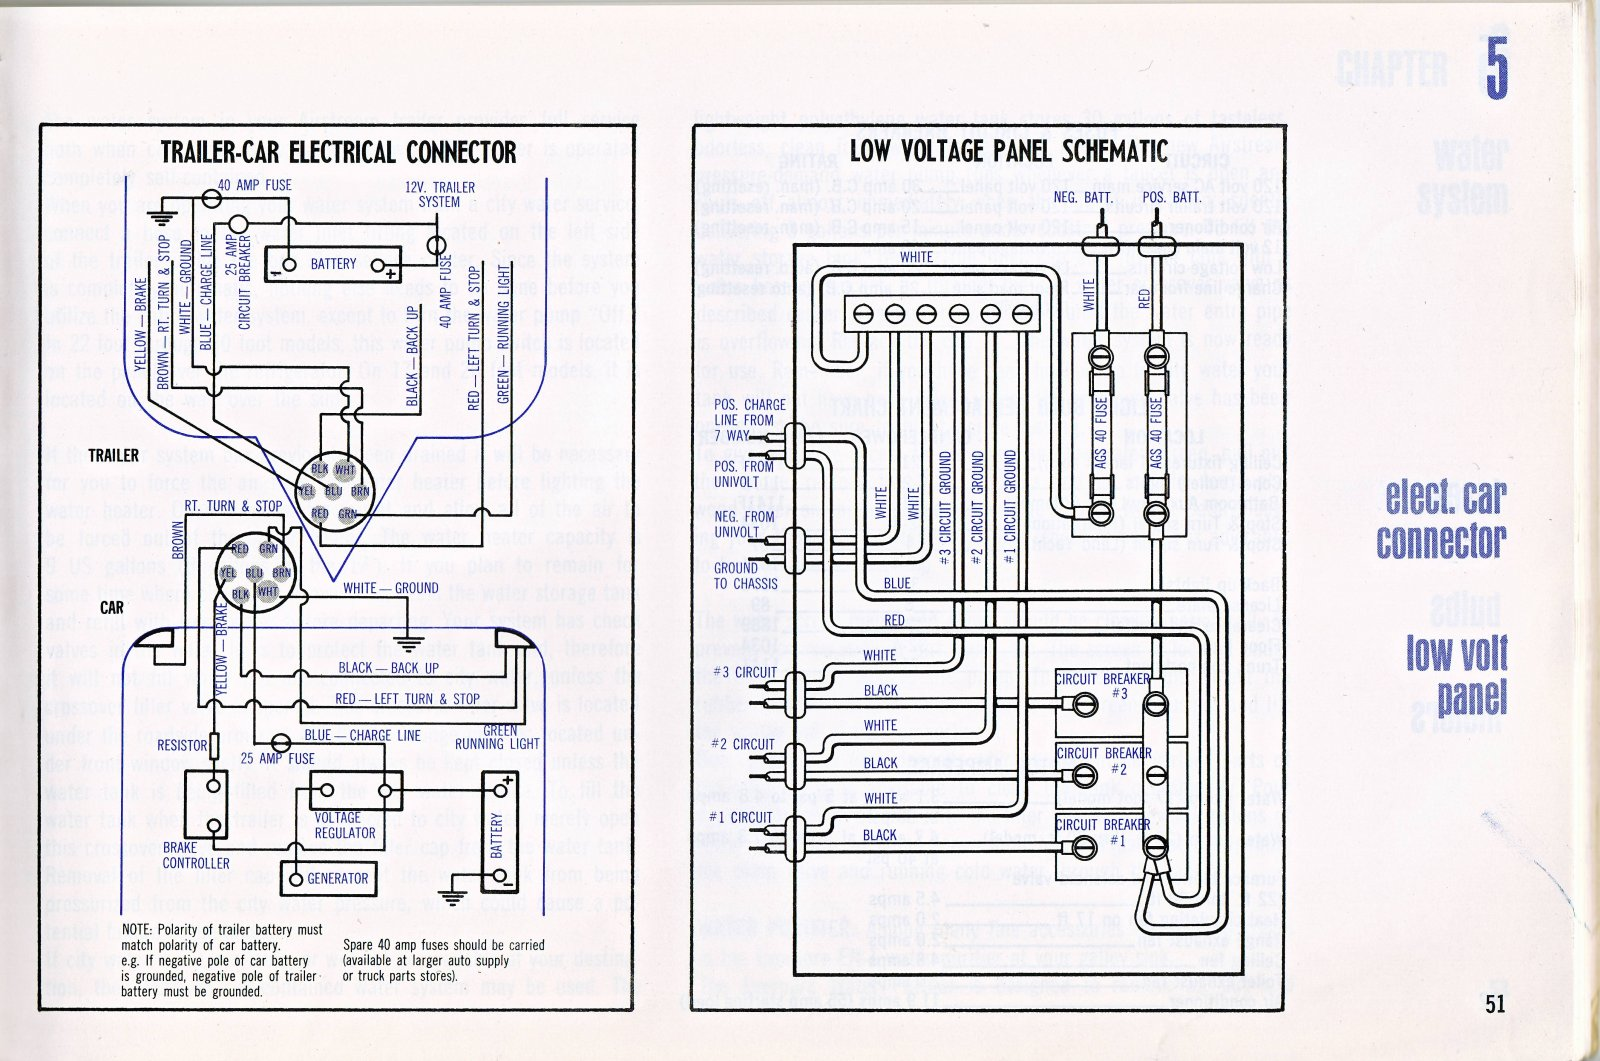 5th Wheel Wiring Diagram 7 Wire Trailer Diagrams Rv Schematic Lance Harness Circuit Maker Kit Color Code